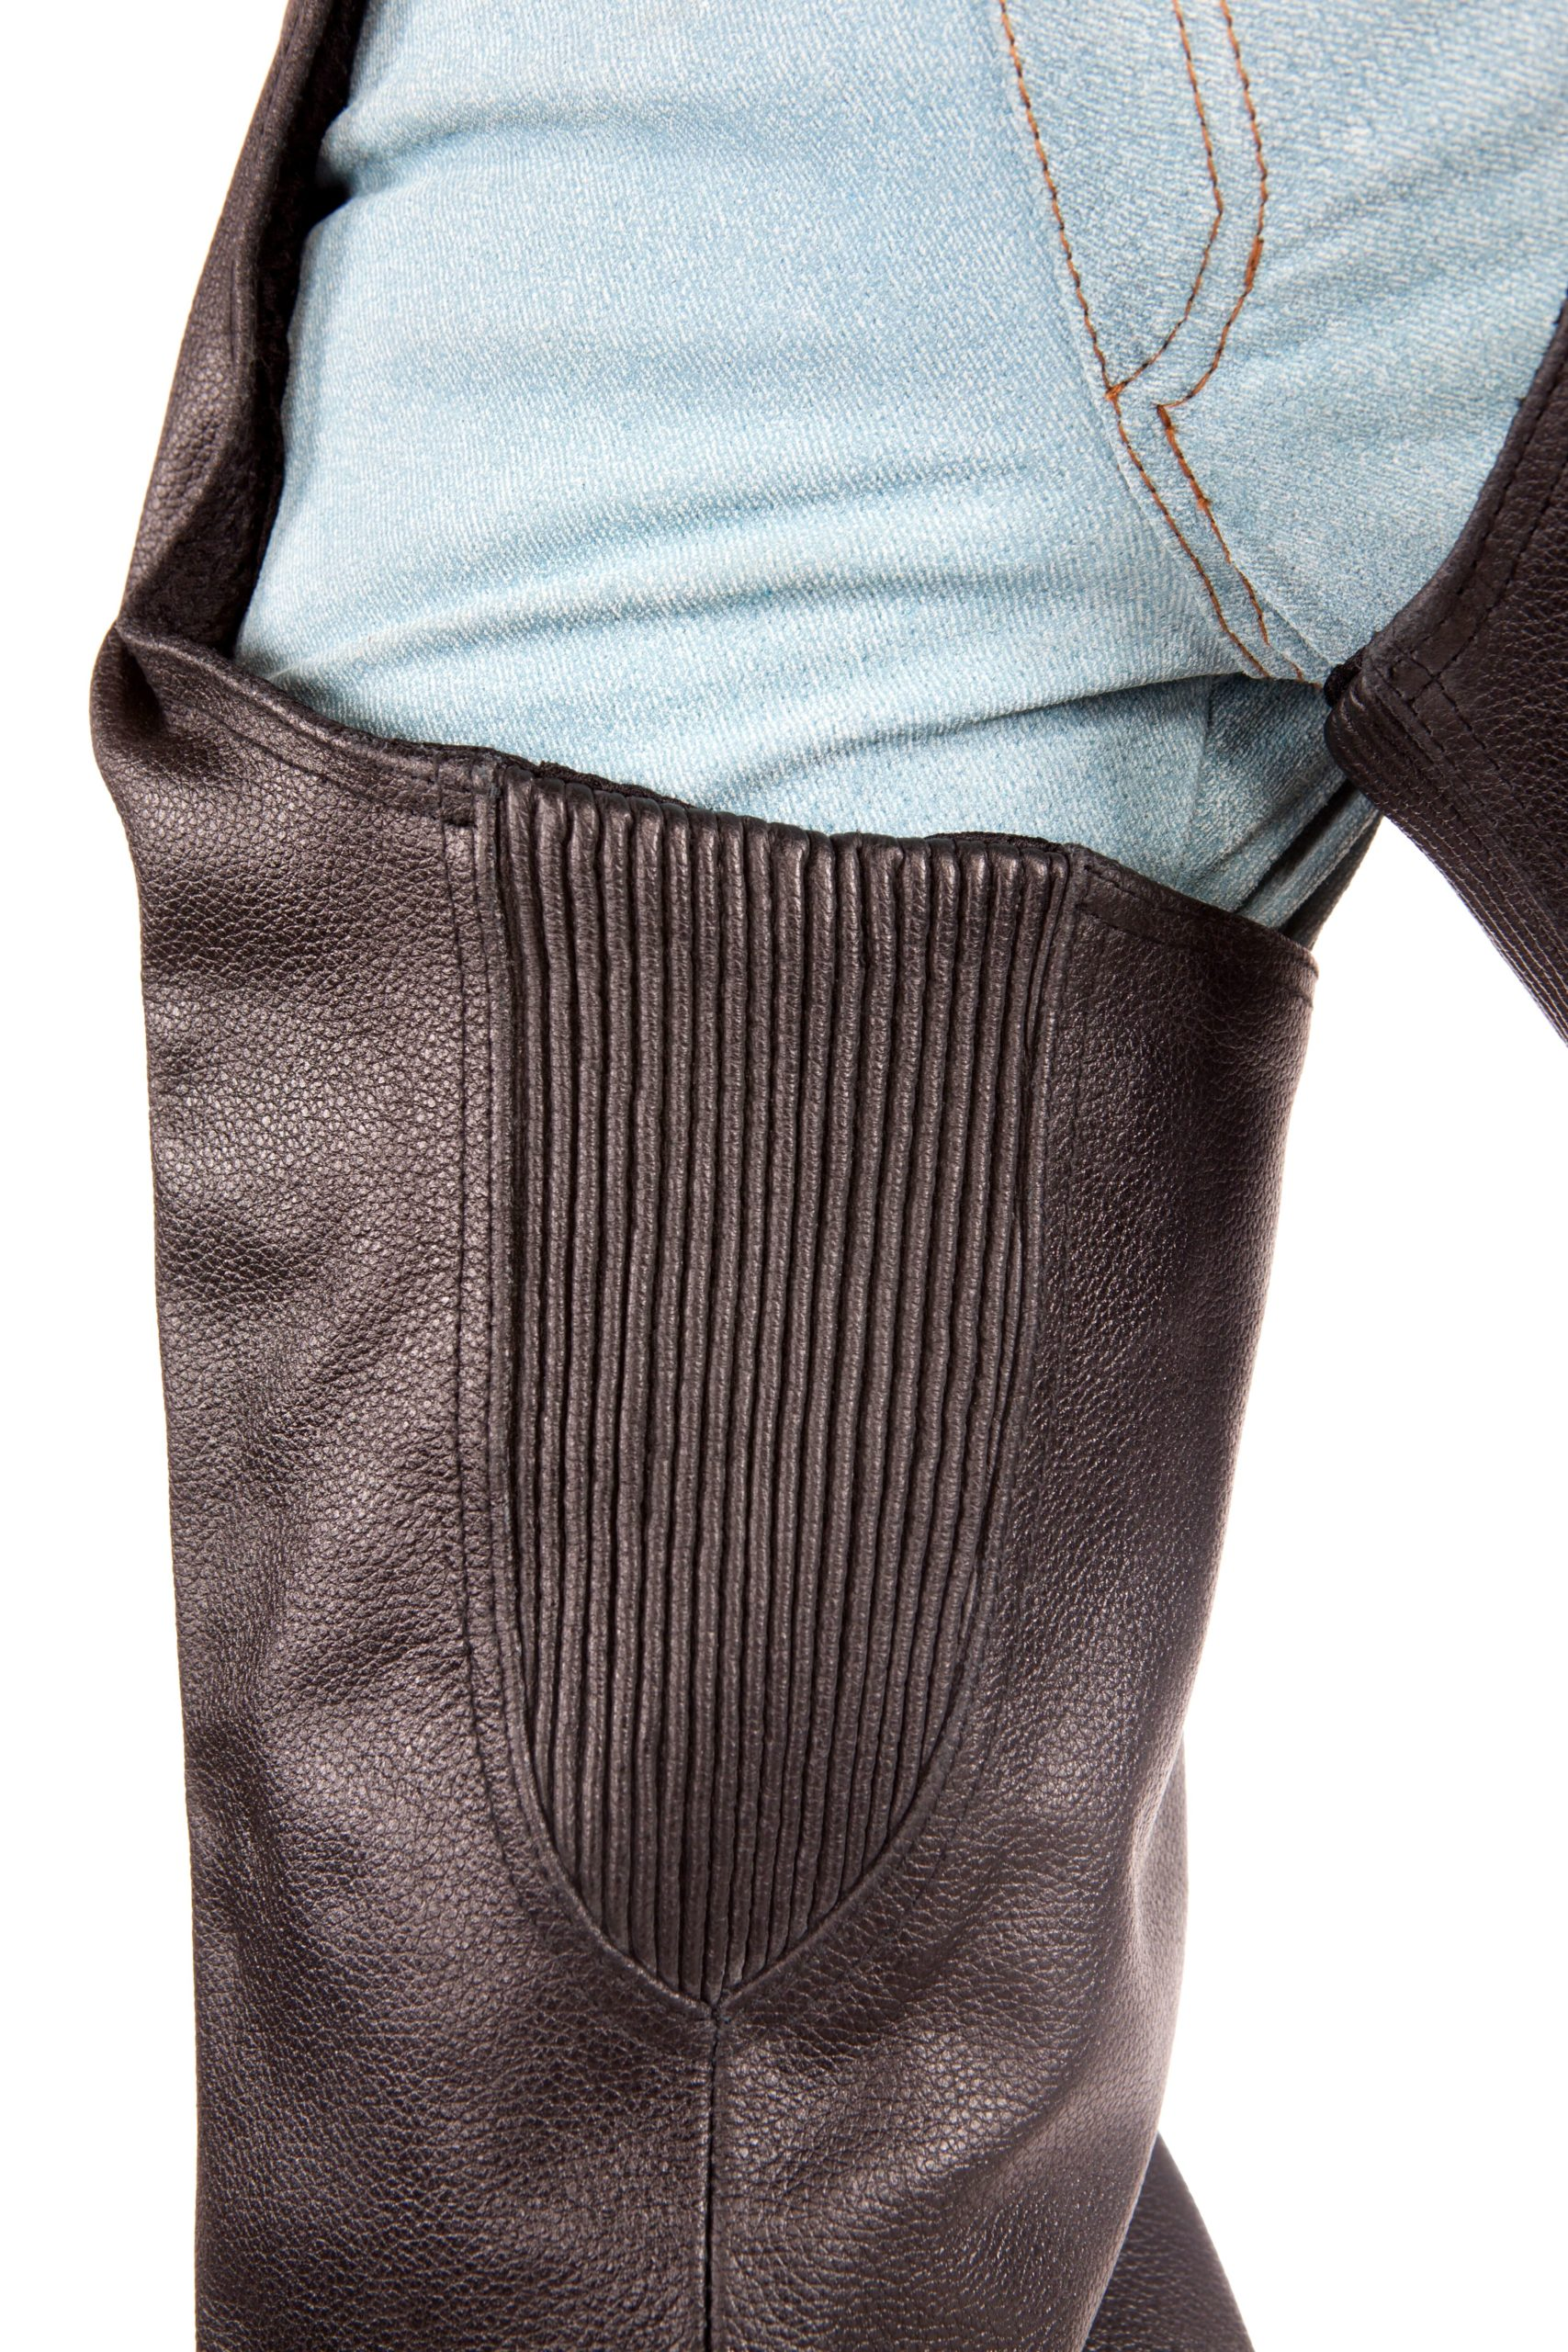 Bike Riding Chaps Braided Leather